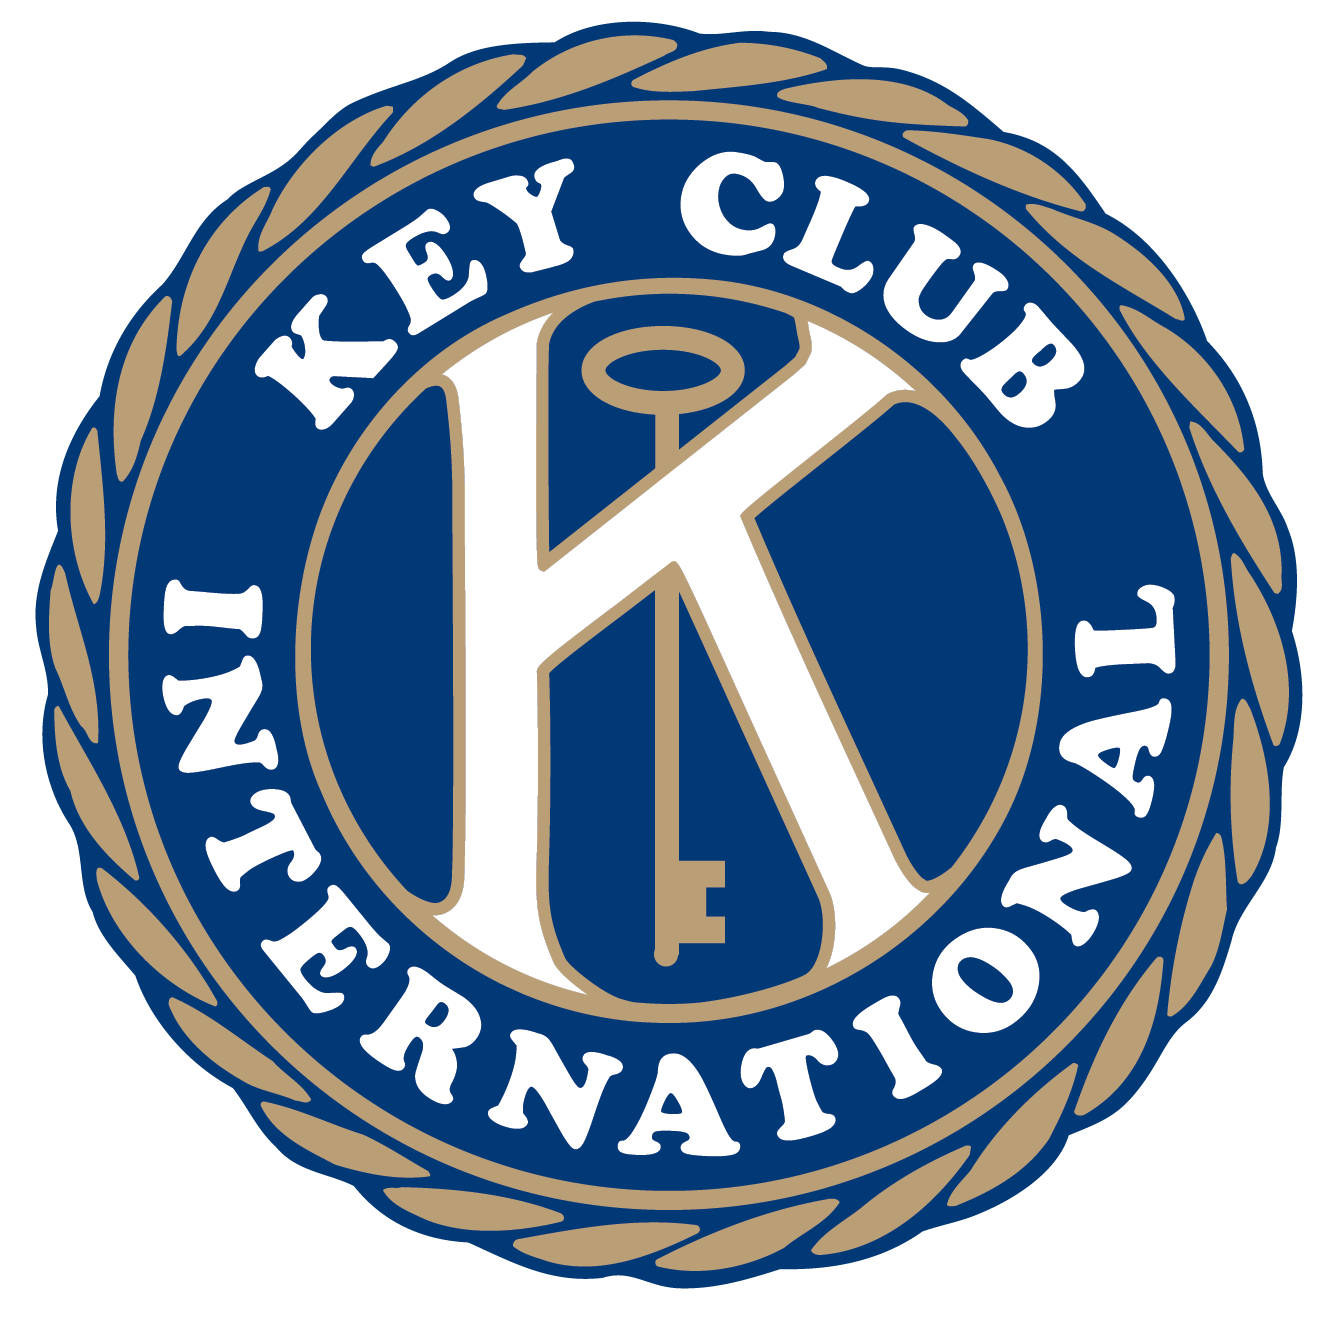 Image of Key Club International Logo